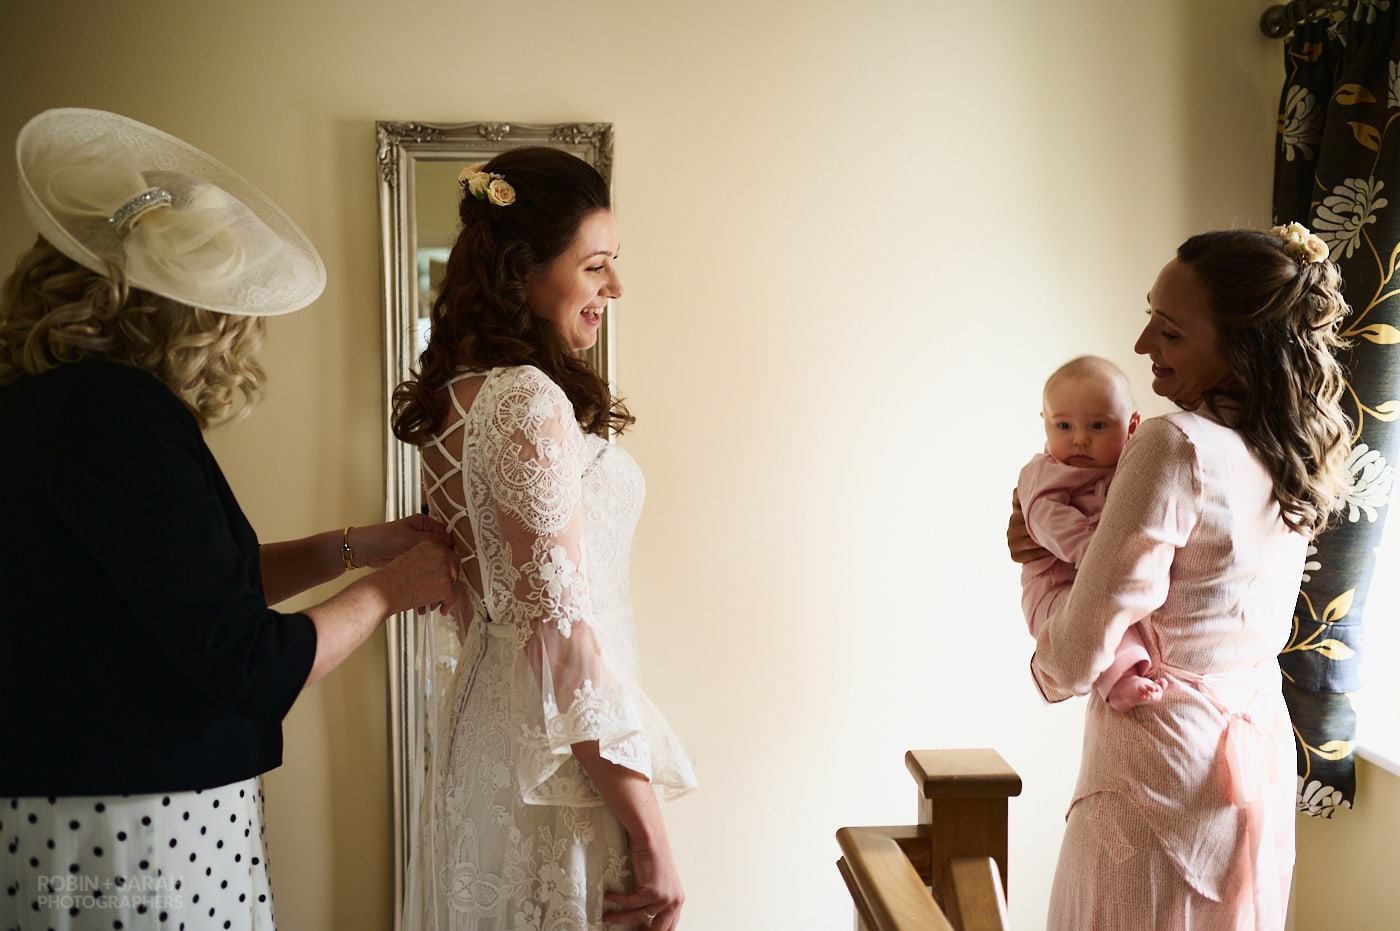 Bride chats with sister holding baby as mum fastens wedding dress